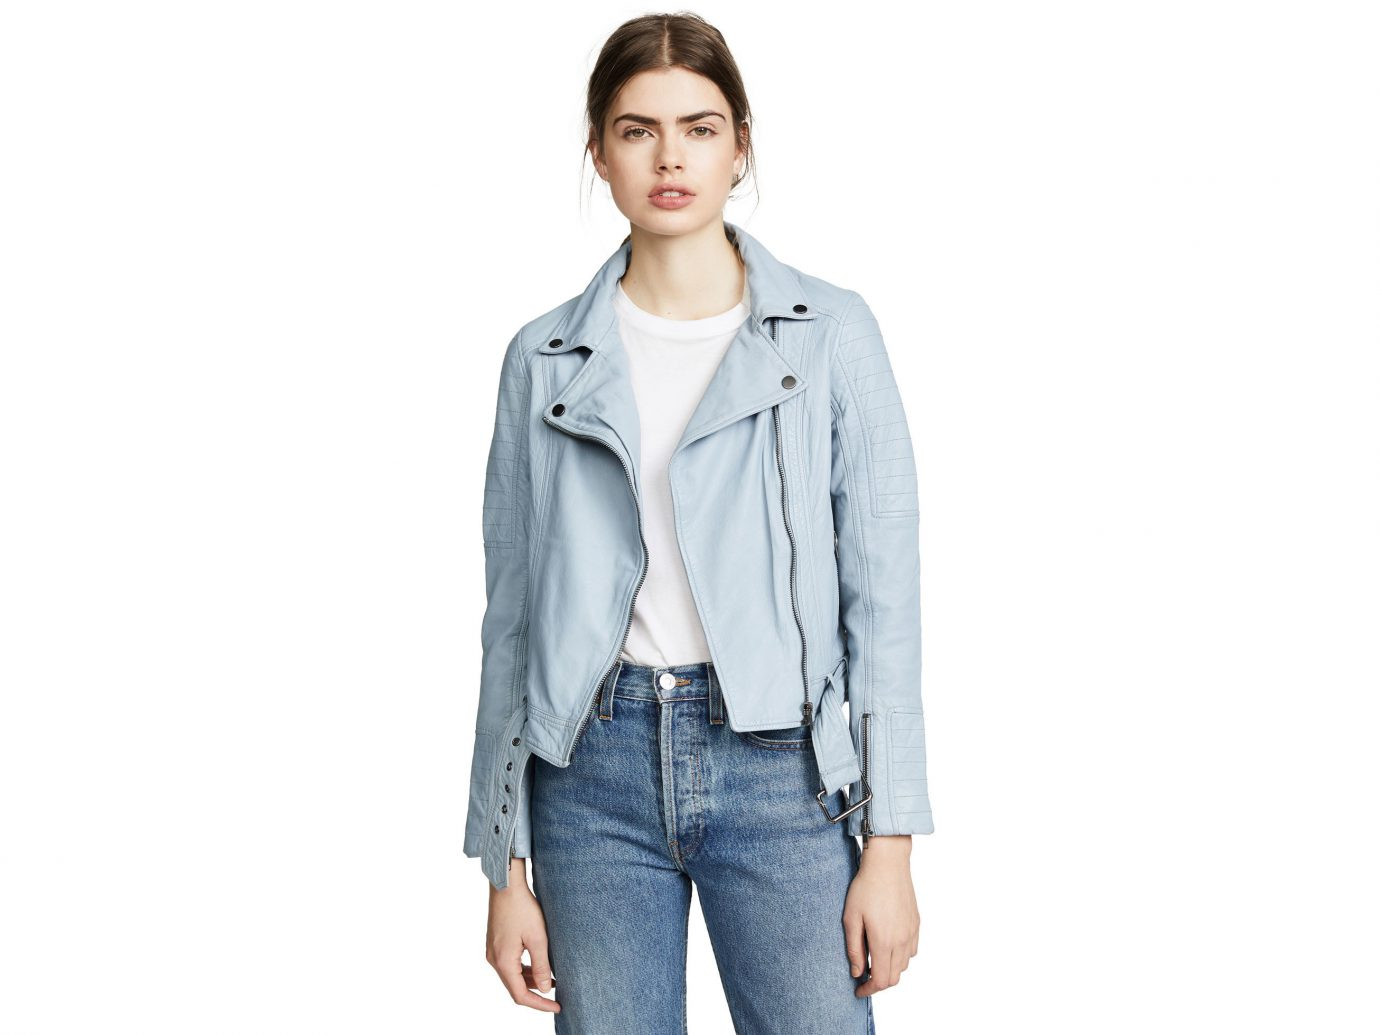 Packing Tips Style + Design Travel Shop person clothing standing jacket posing denim wearing shoulder fashion model jeans leather jacket smiling outerwear coat sleeve material leather trouser